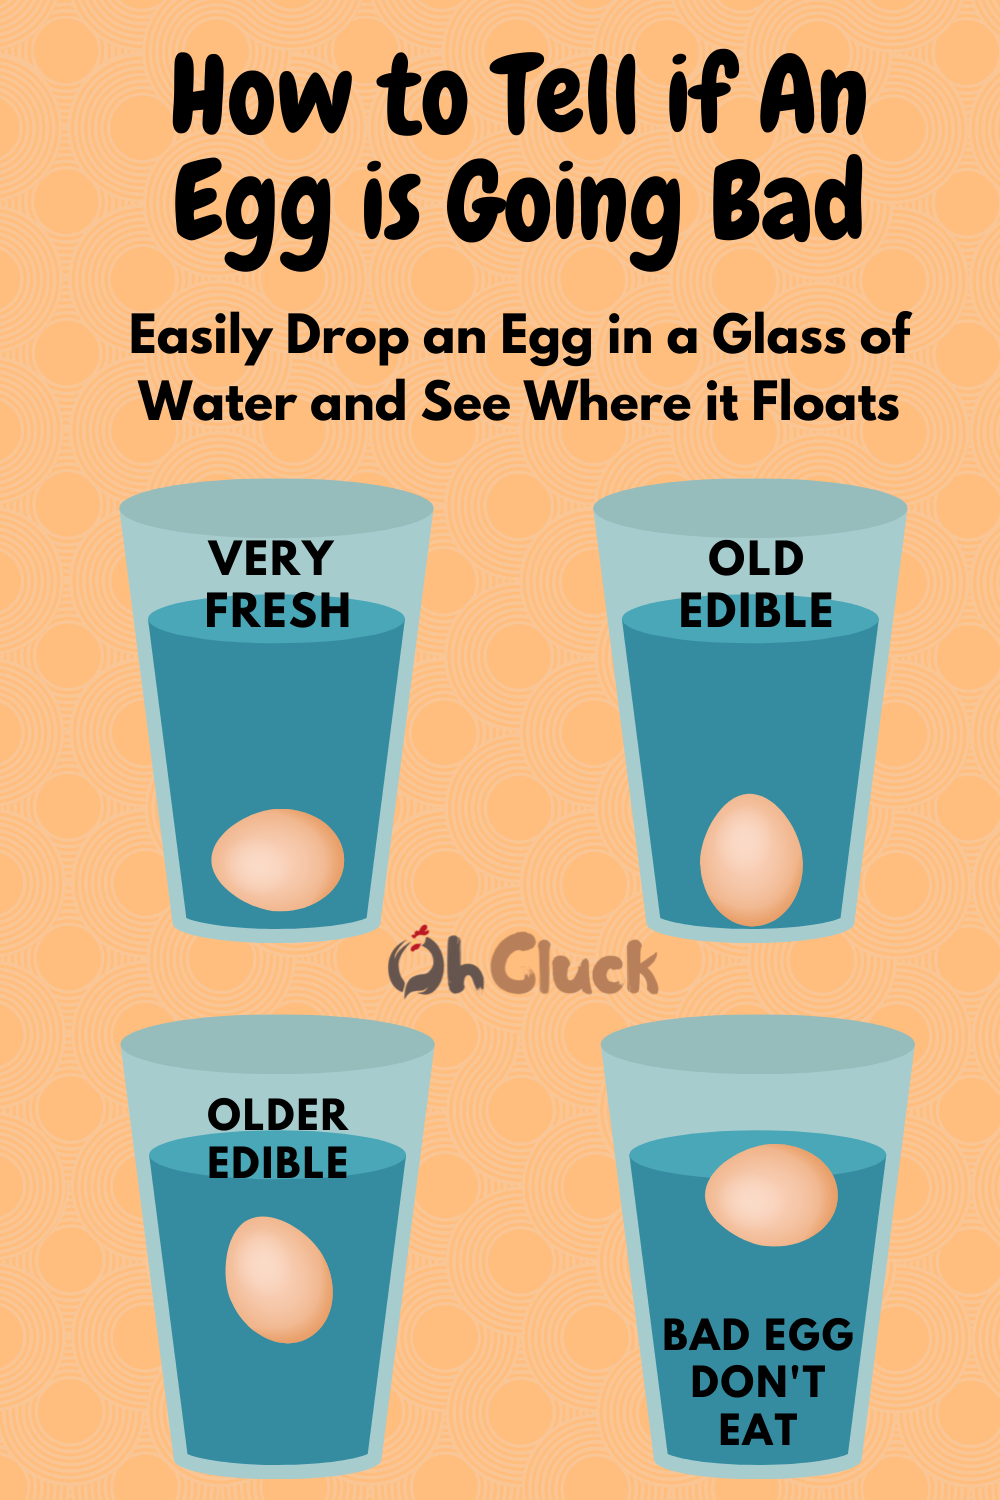 How to Tell if An Egg is Going Bad_ (1).png